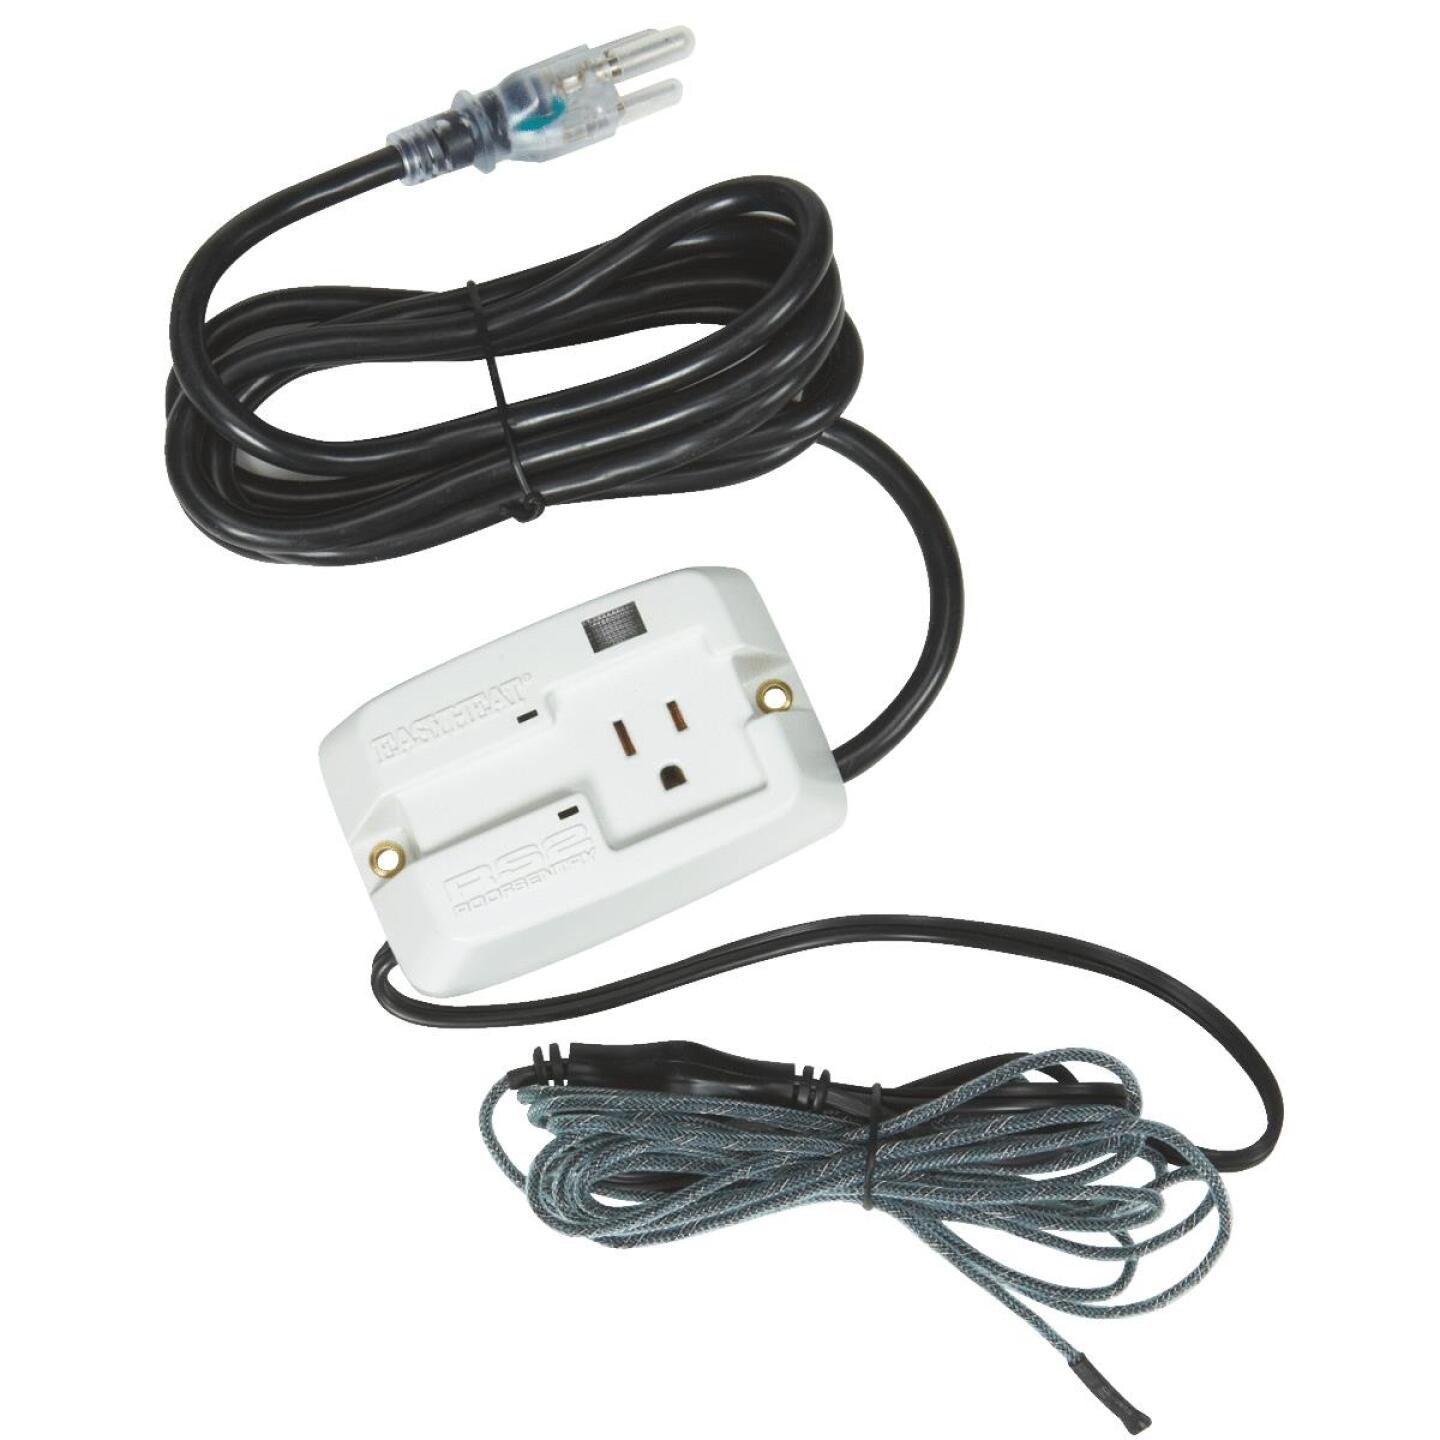 Easy Heat 1200W Roof De-Icing Heating Cable Control Image 1